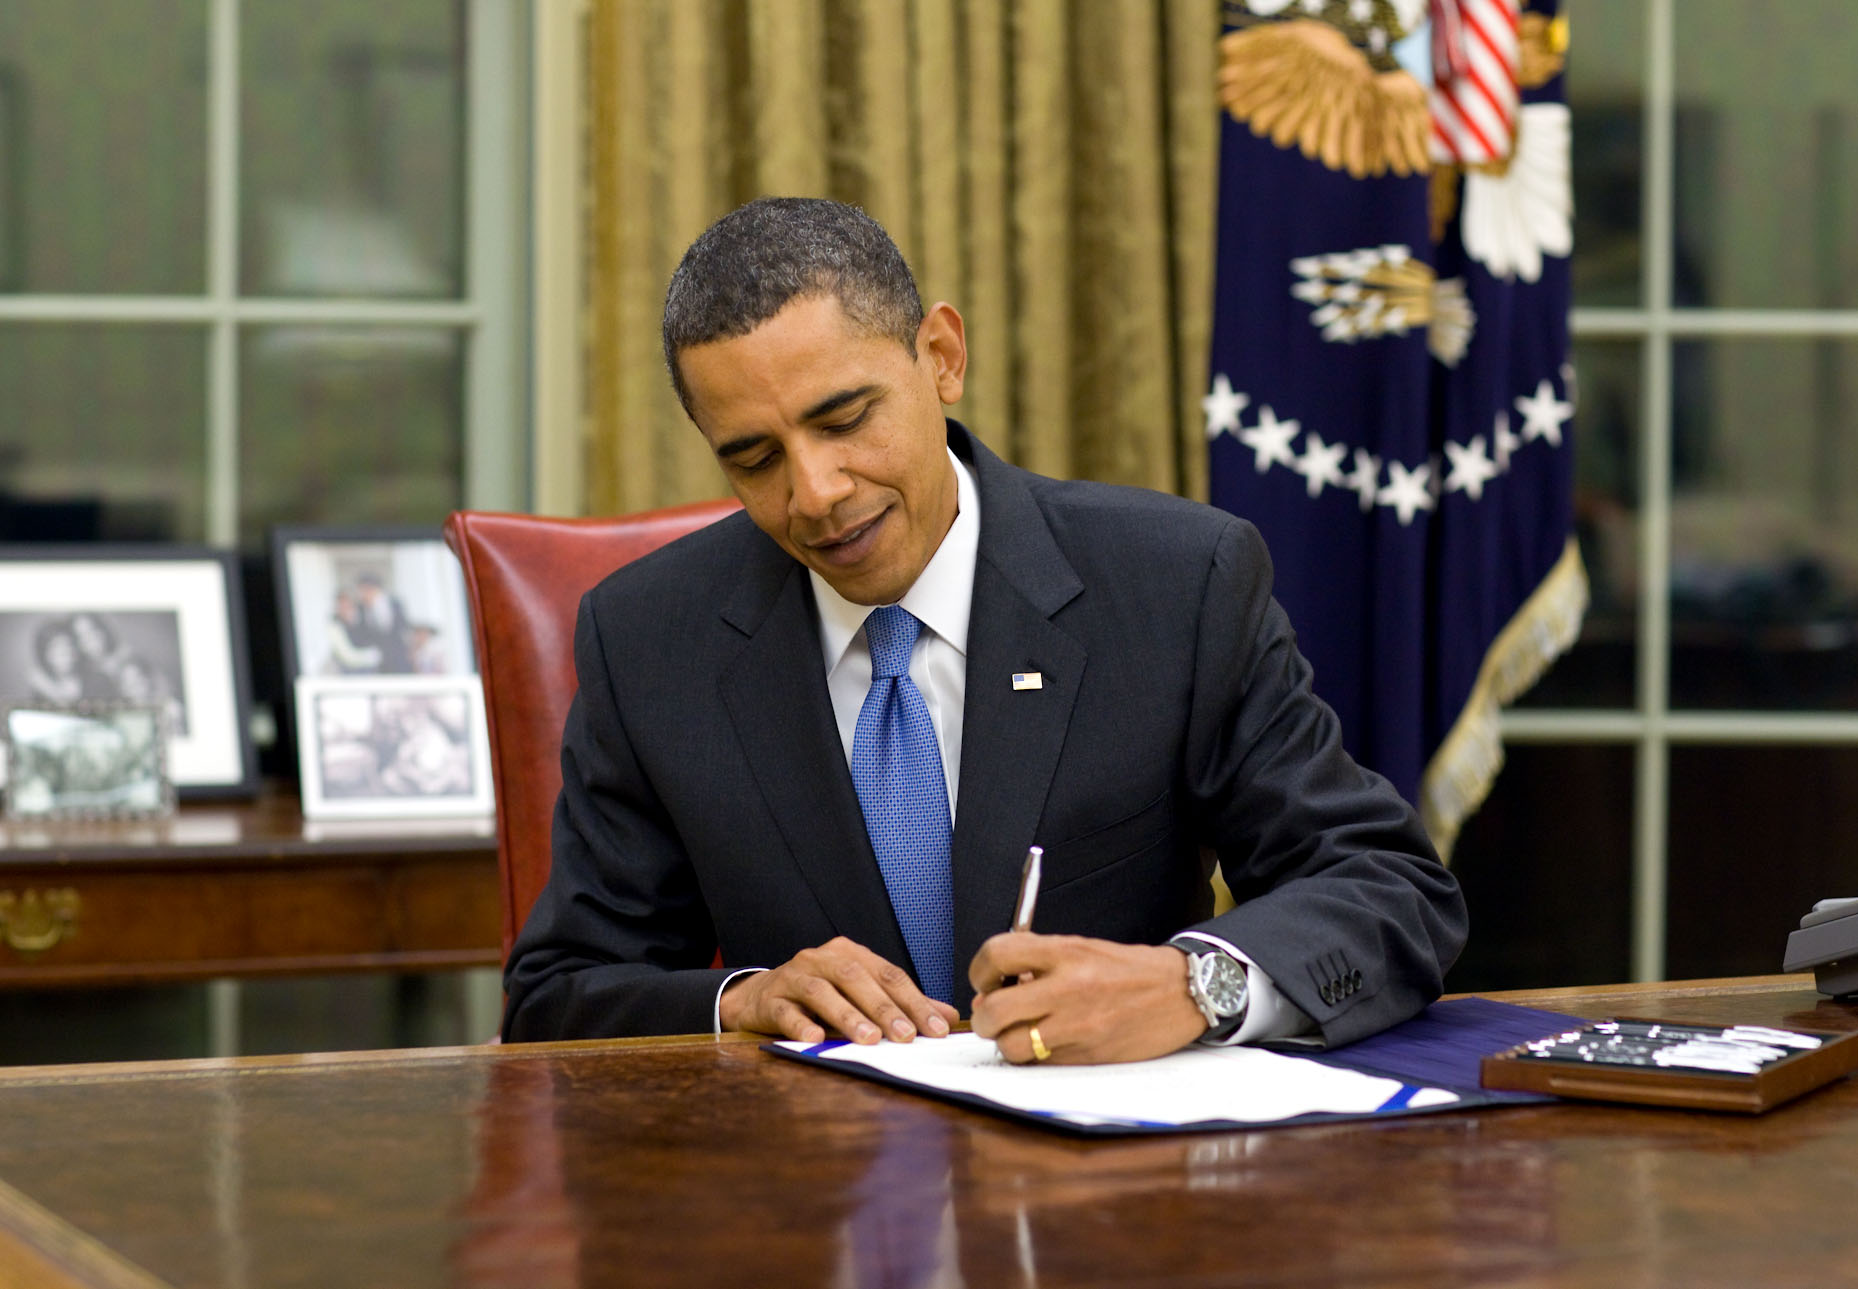 President Obama Signs Legislation Providing Immediate Tax Deductions for Haiti Charitable Contributions